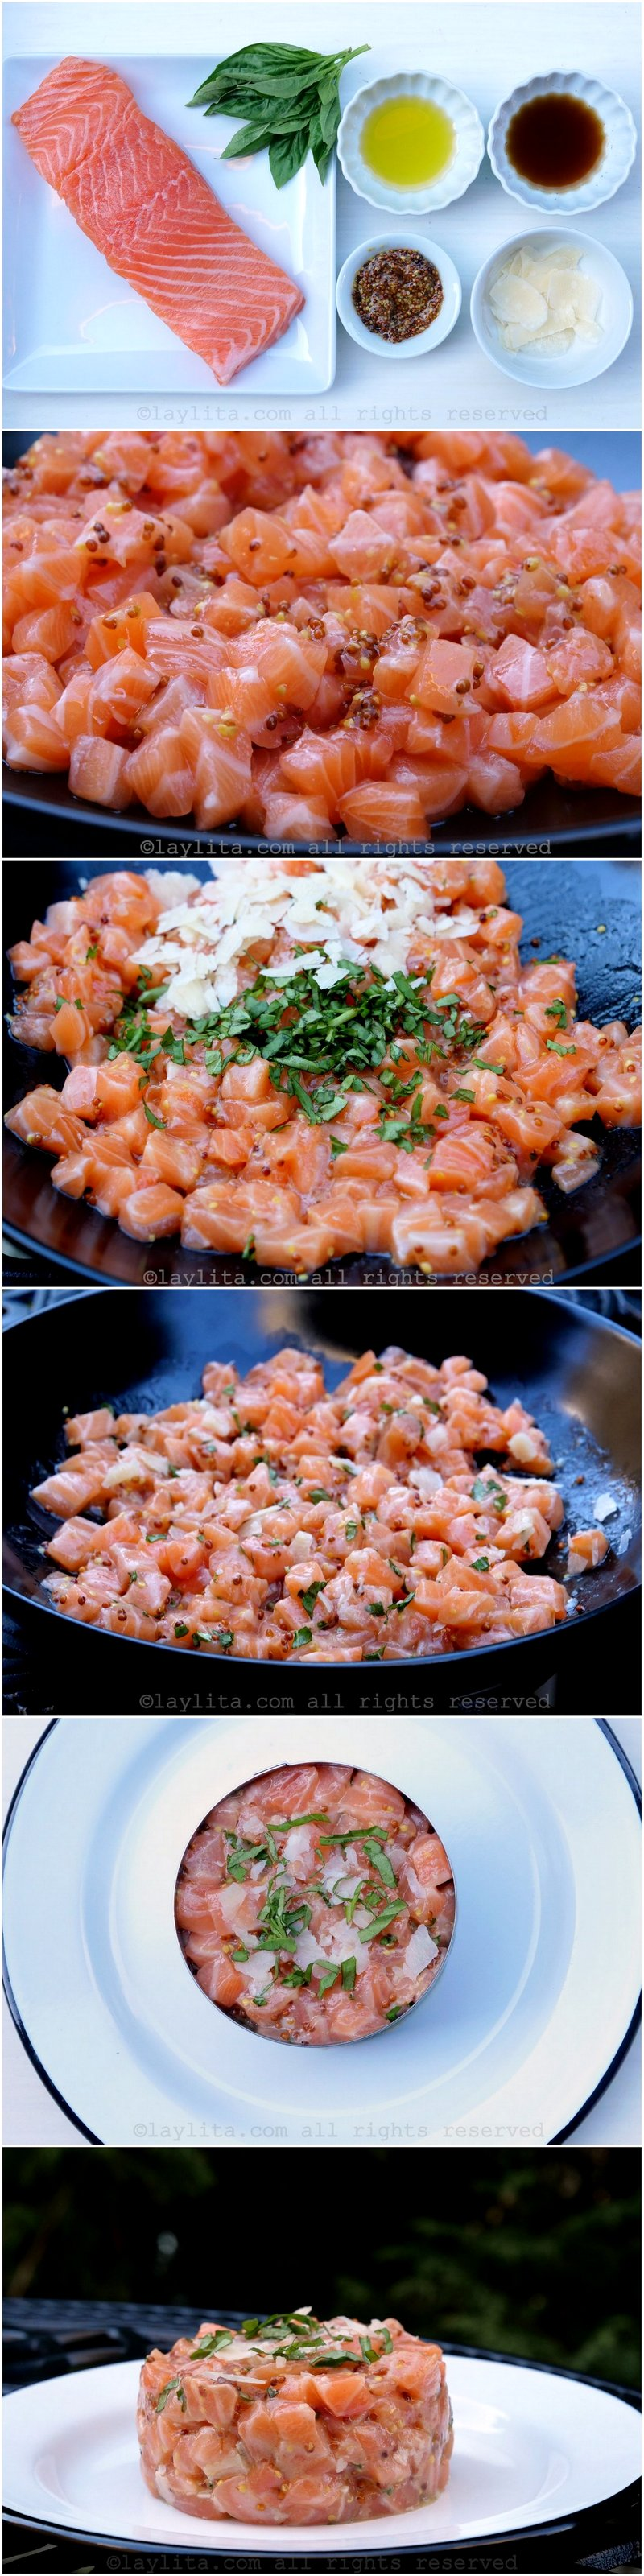 How to make French salmon tartare